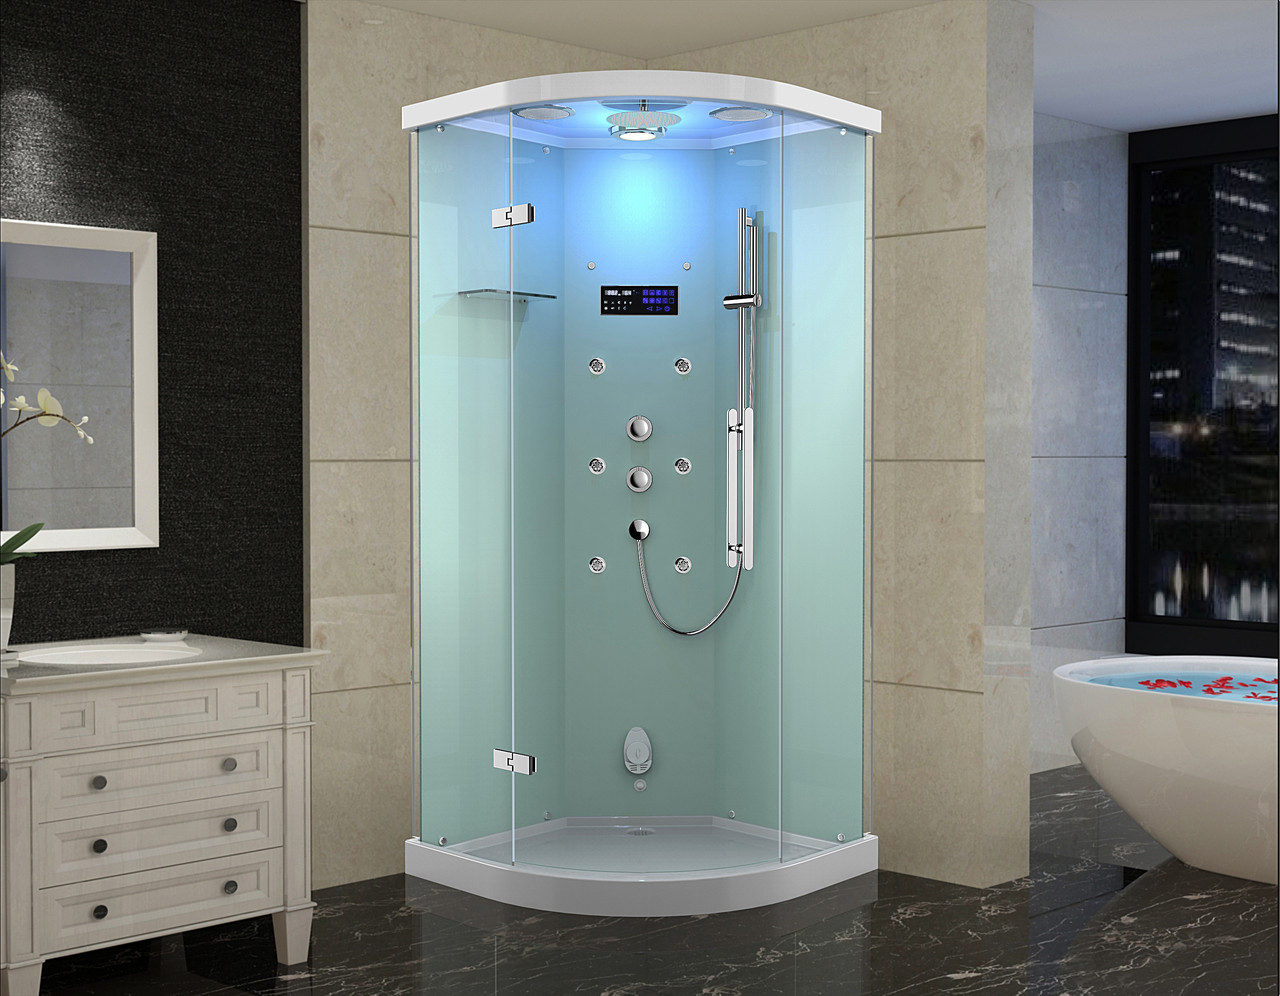 Za231 Grandmere Frameless Glass Round Steam Shower Enclosure